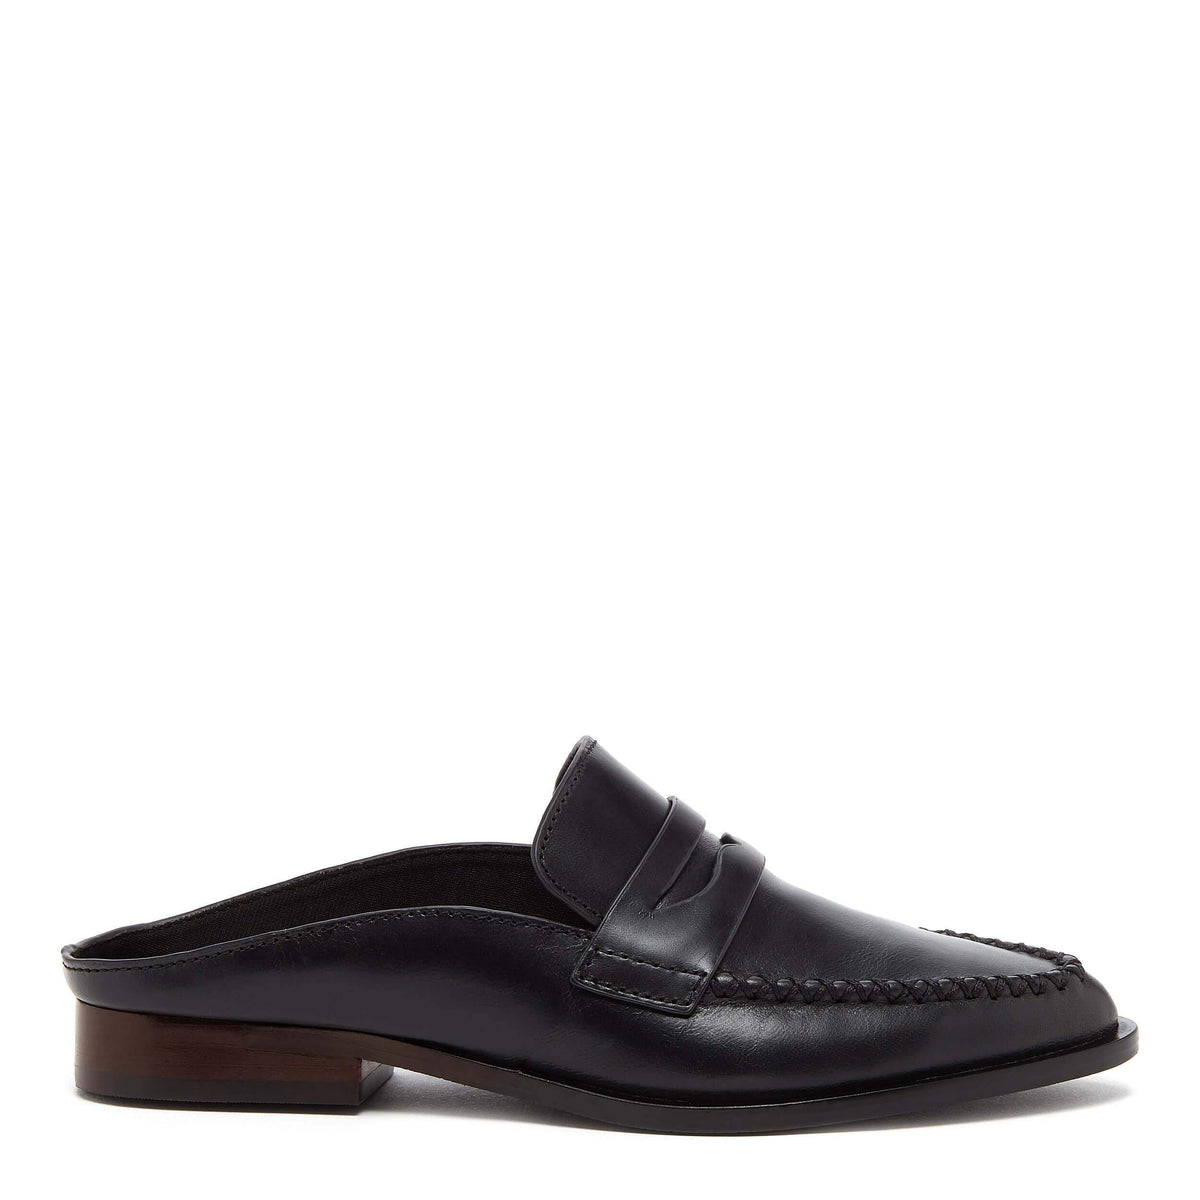 Kelsi Dagger BK® Sanders Black Leather Mule